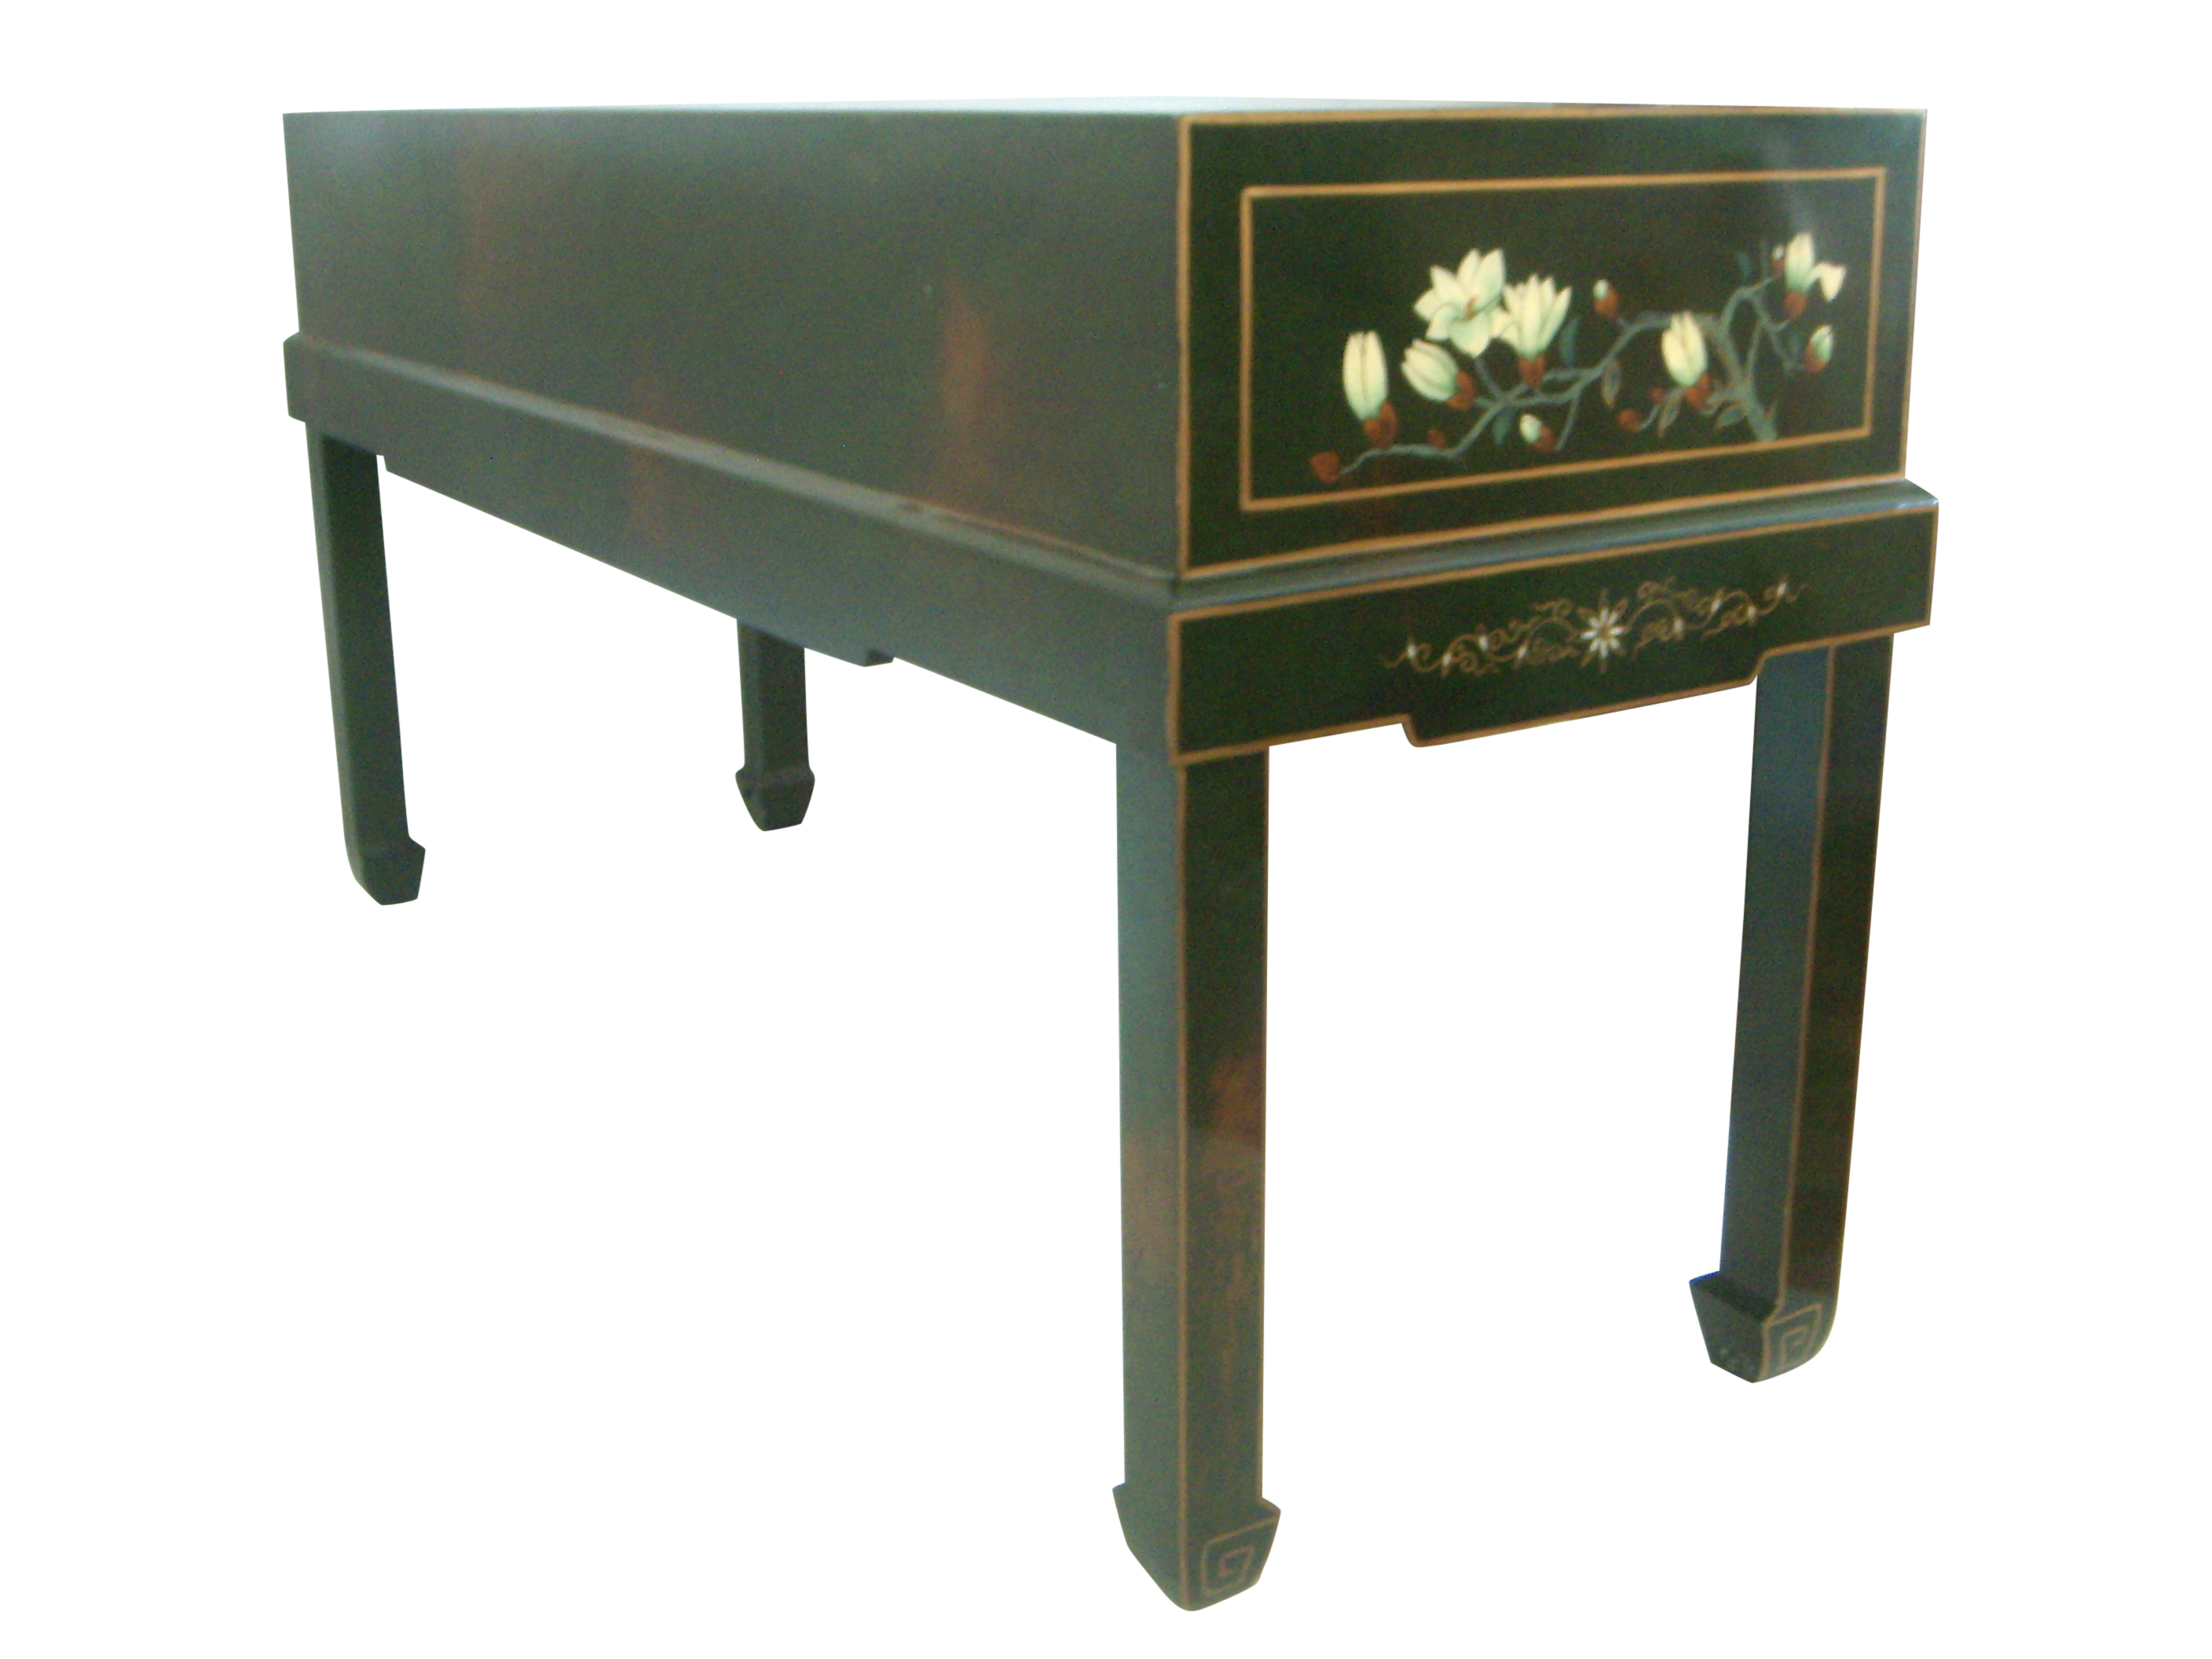 Merveilleux A High End Vintage Oriental Console Table With Lots Of Super Hand Painted  Detailing. Solid